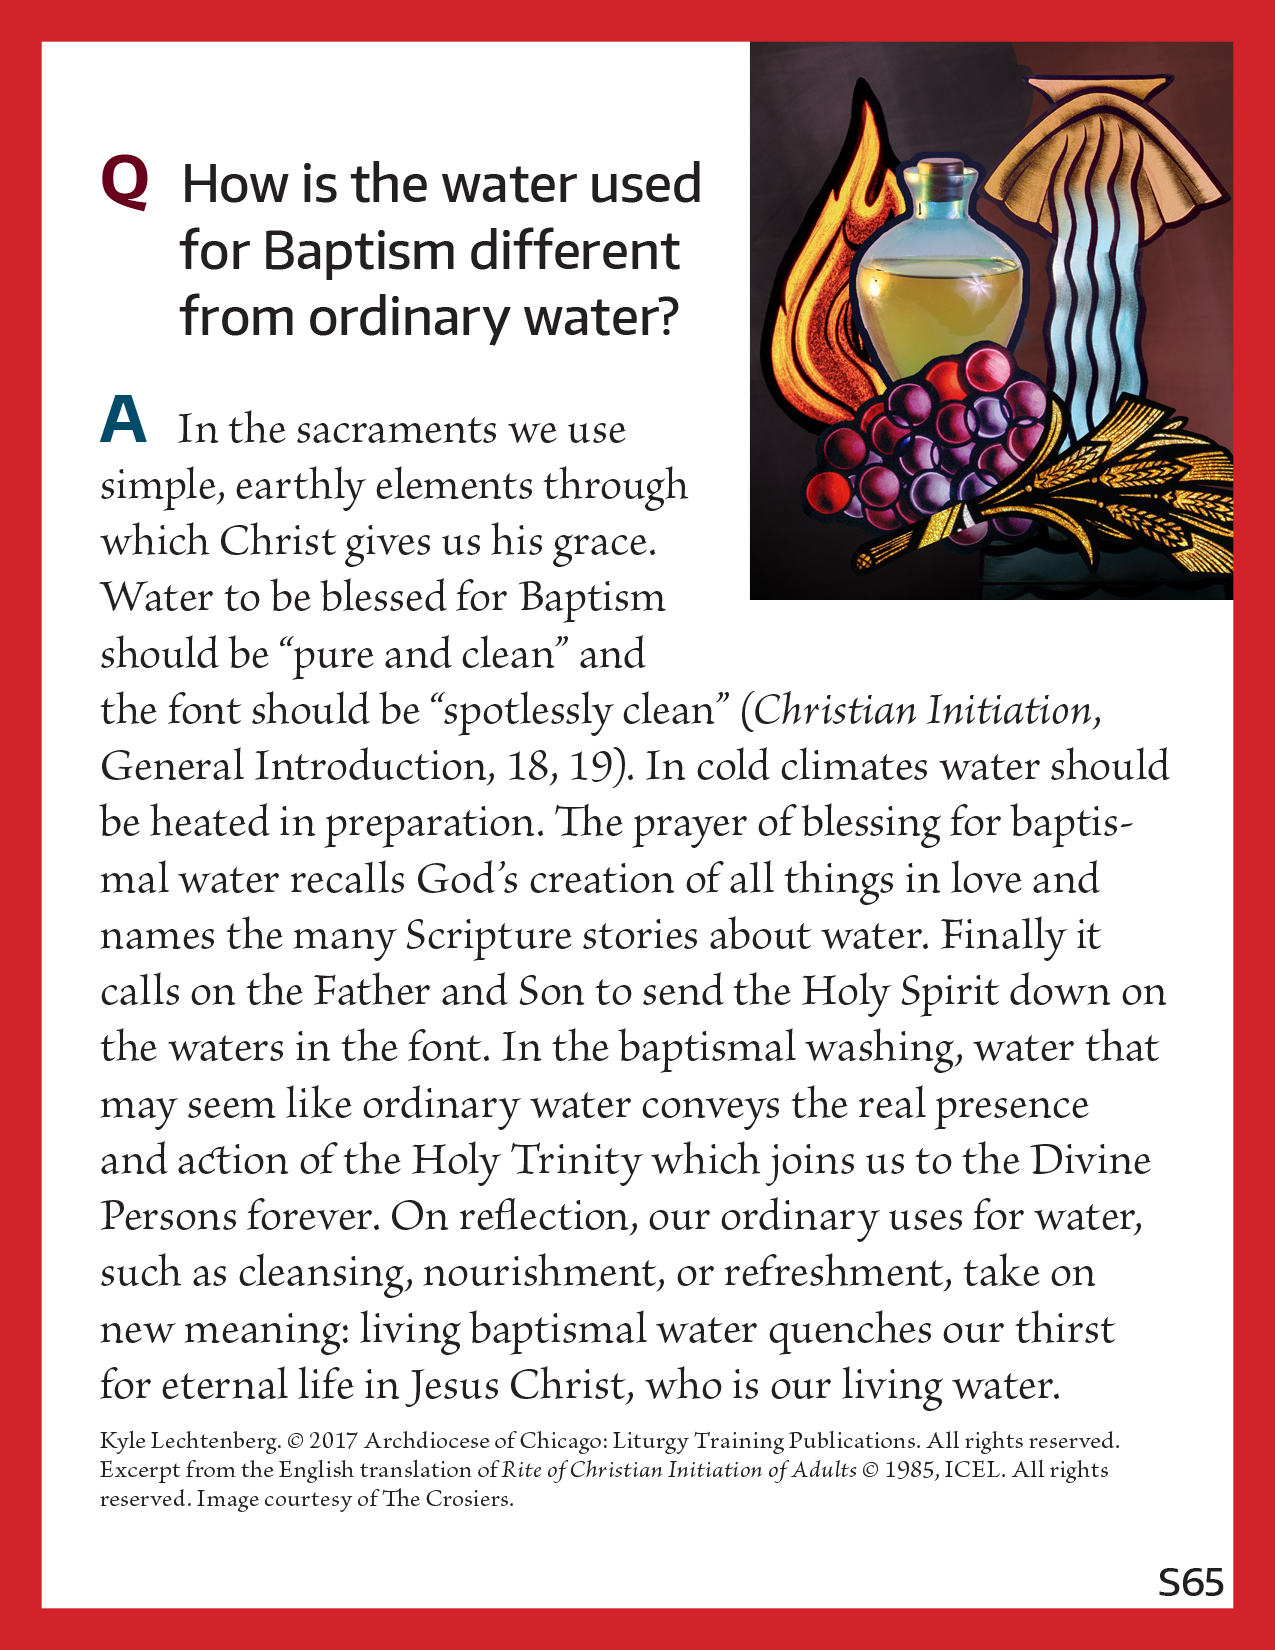 S65-baptismal-water-different.jpg